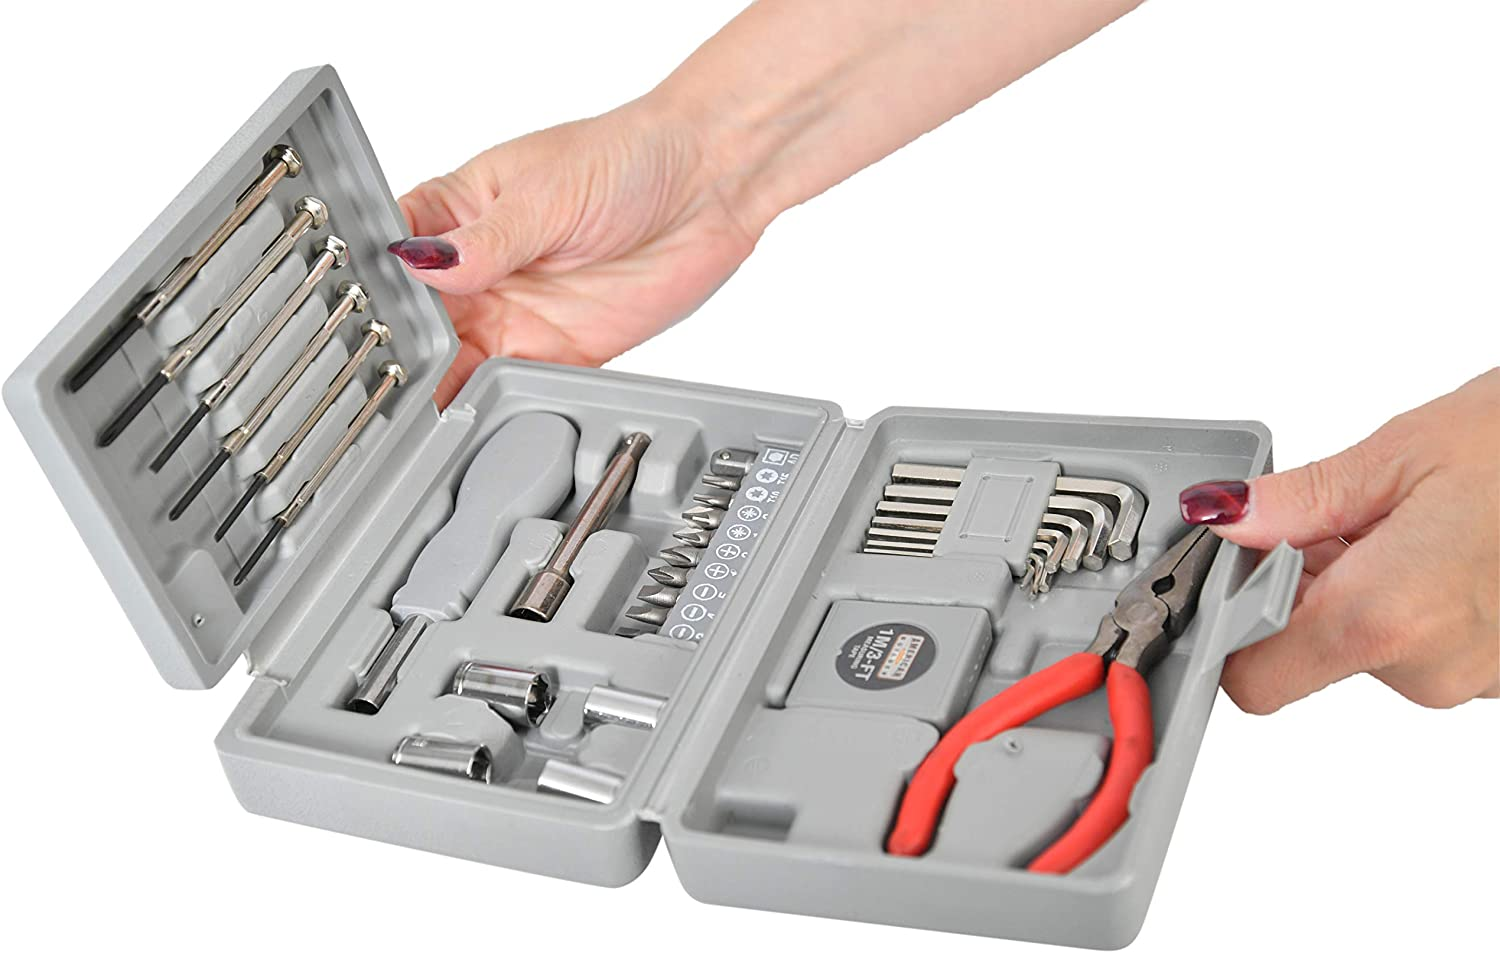 HOME-X Tri-Fold Tool Set 31 pc Kit with Socket//Allen Wrench and Precision Screwdrivers